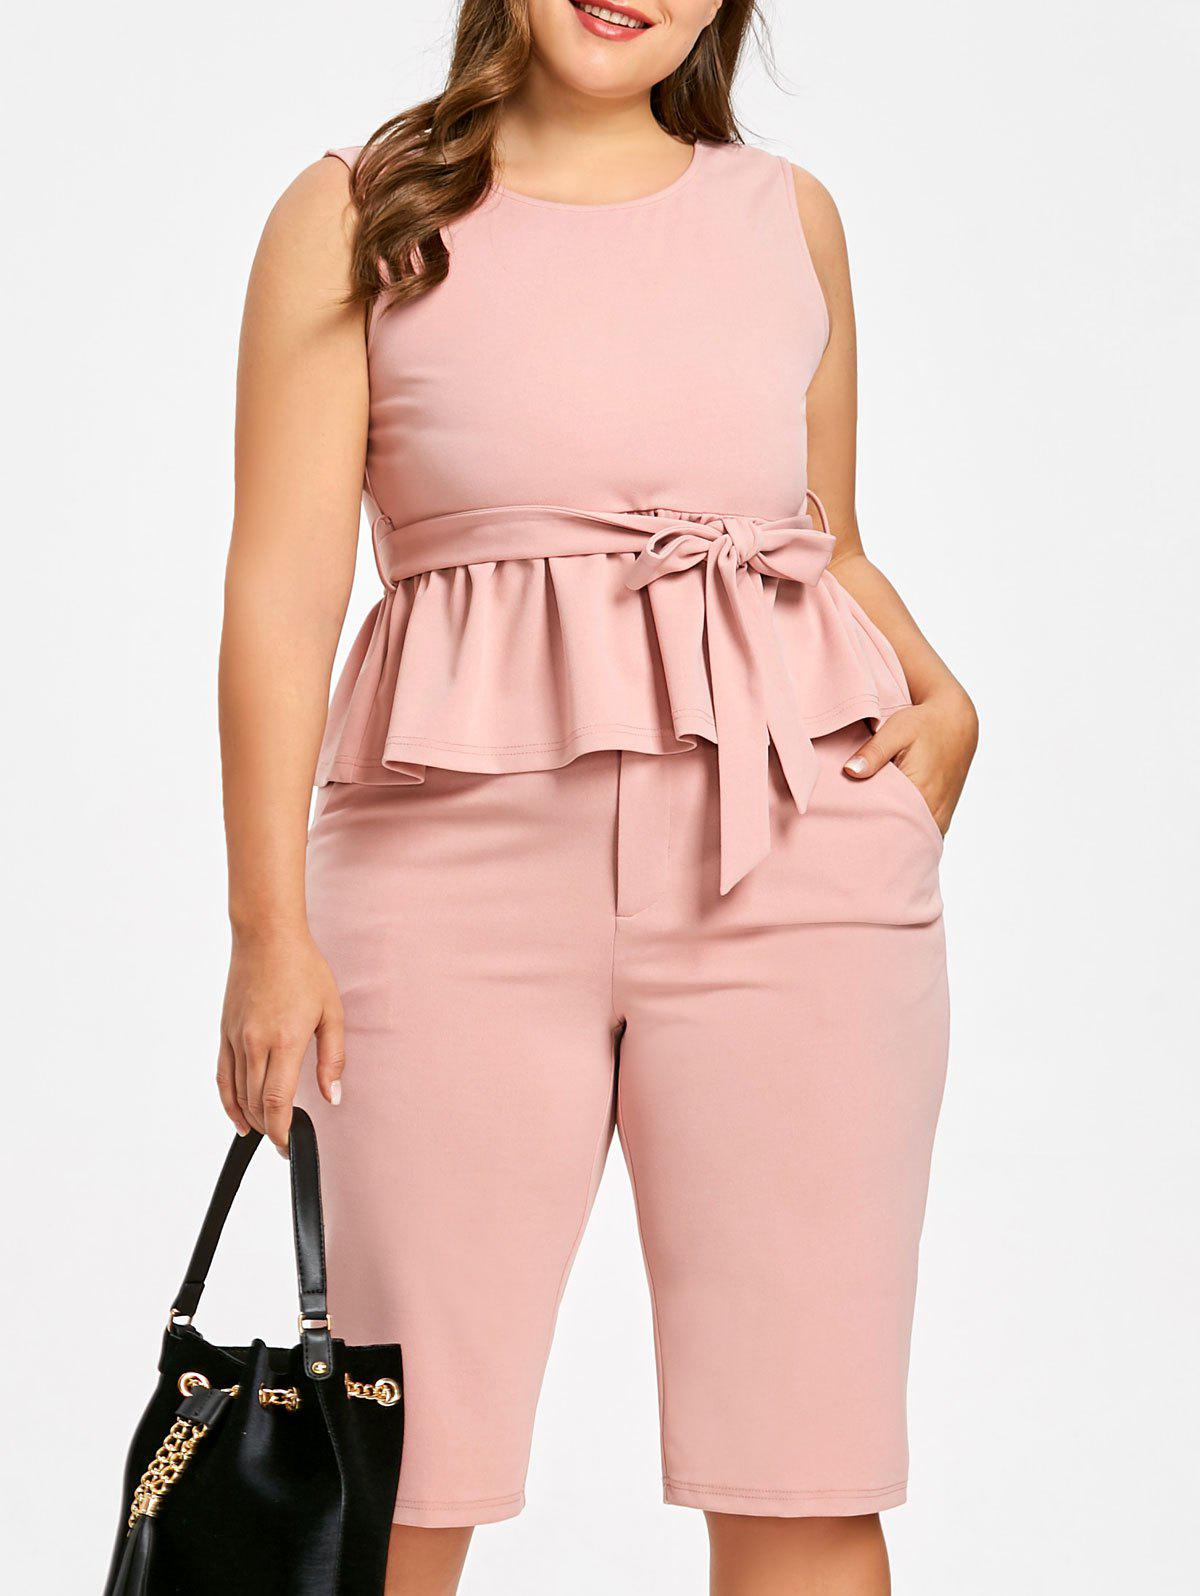 Plus Size Tie Belt Peplum Top with Knee Length Shorts